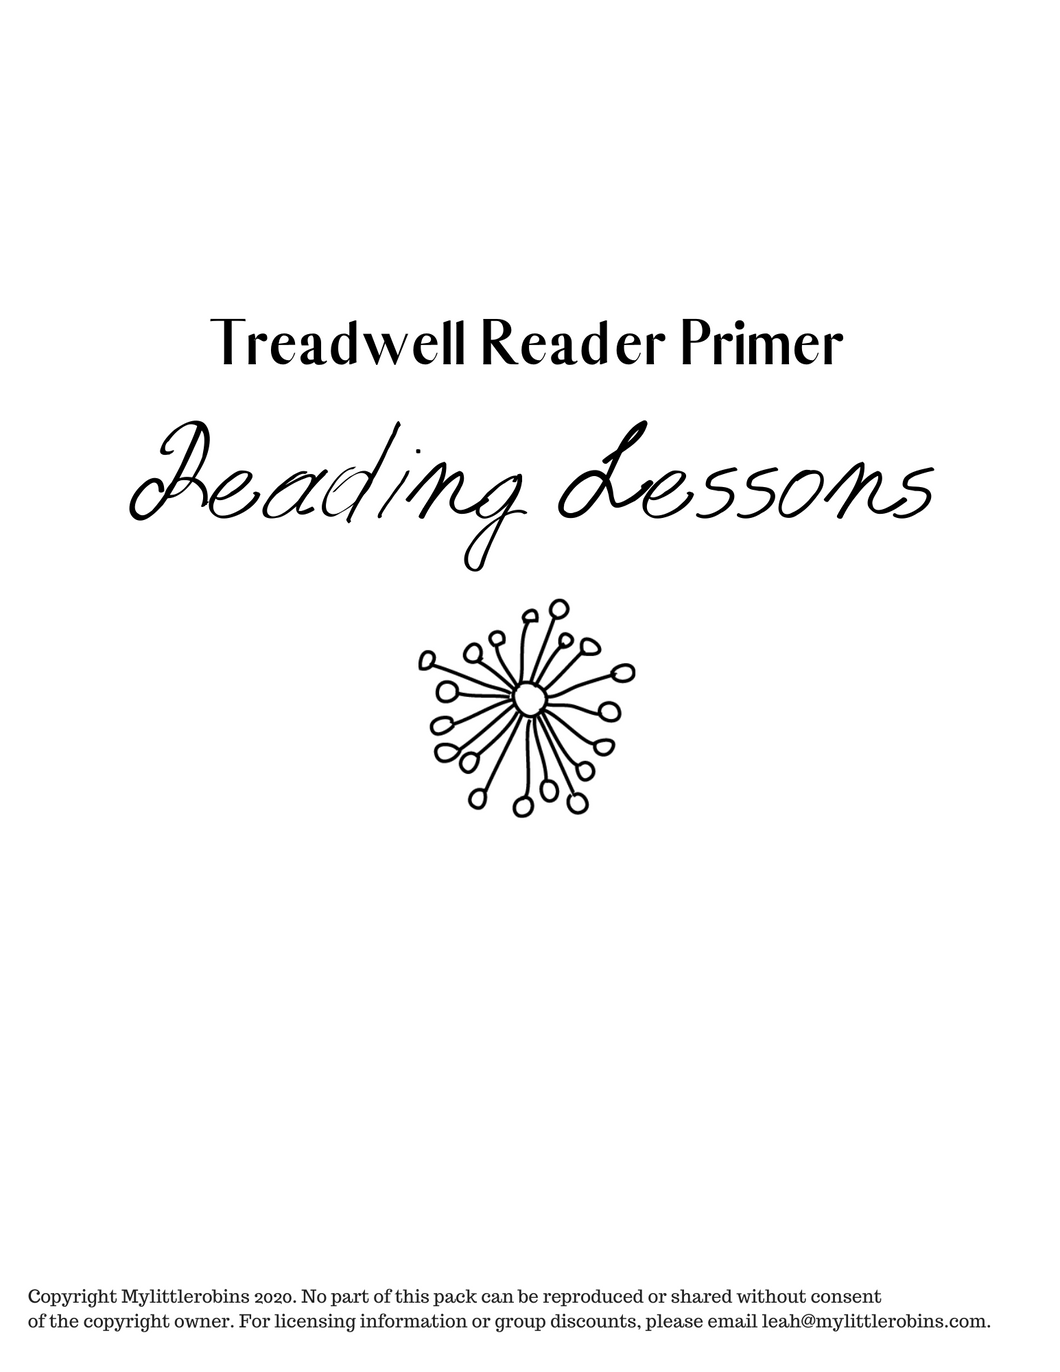 Free and Treadwell Primer Reading Lessons